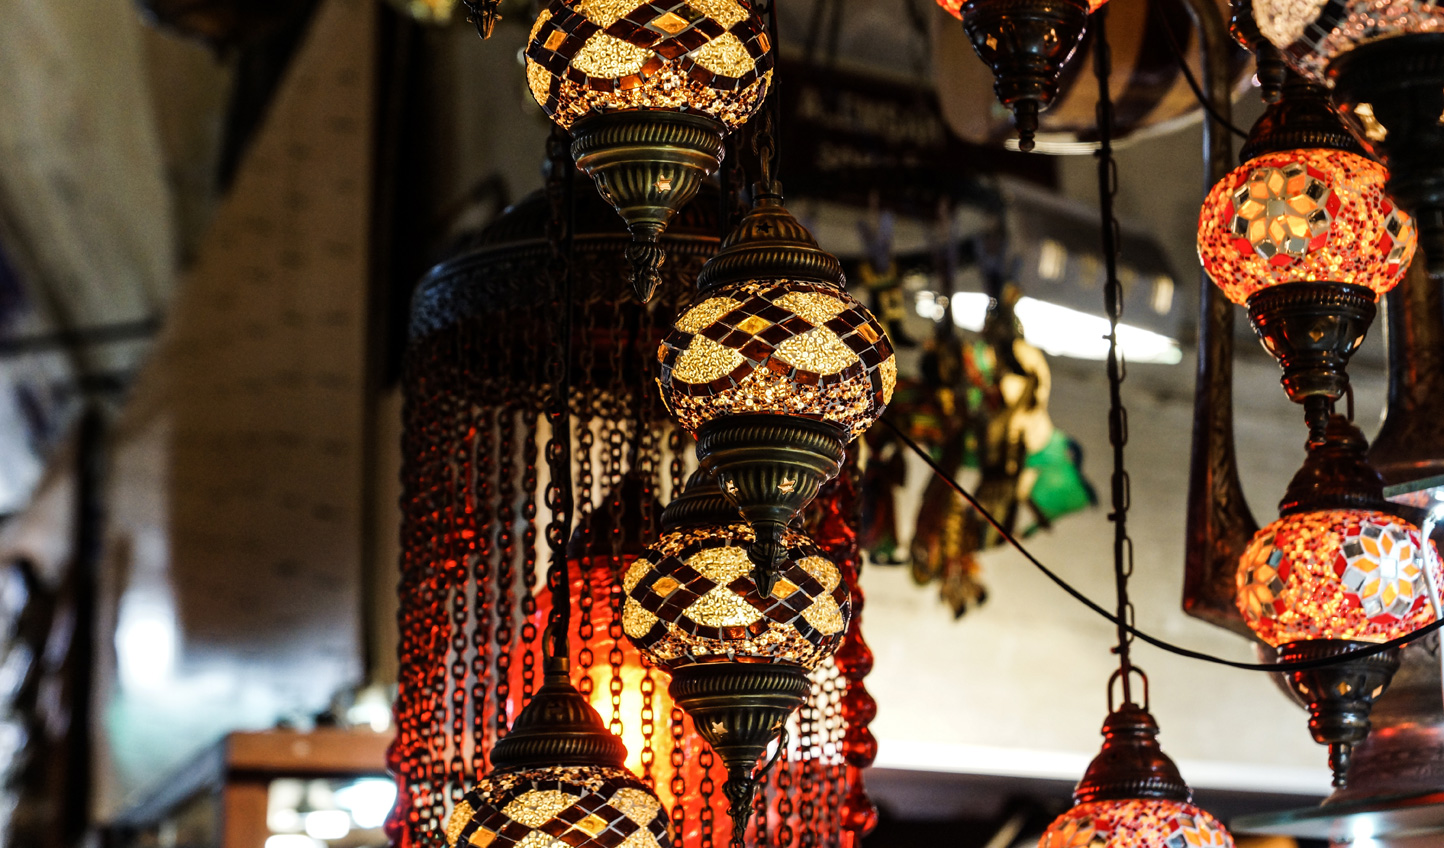 Shop for a trinket or two in the Grand Bazaar